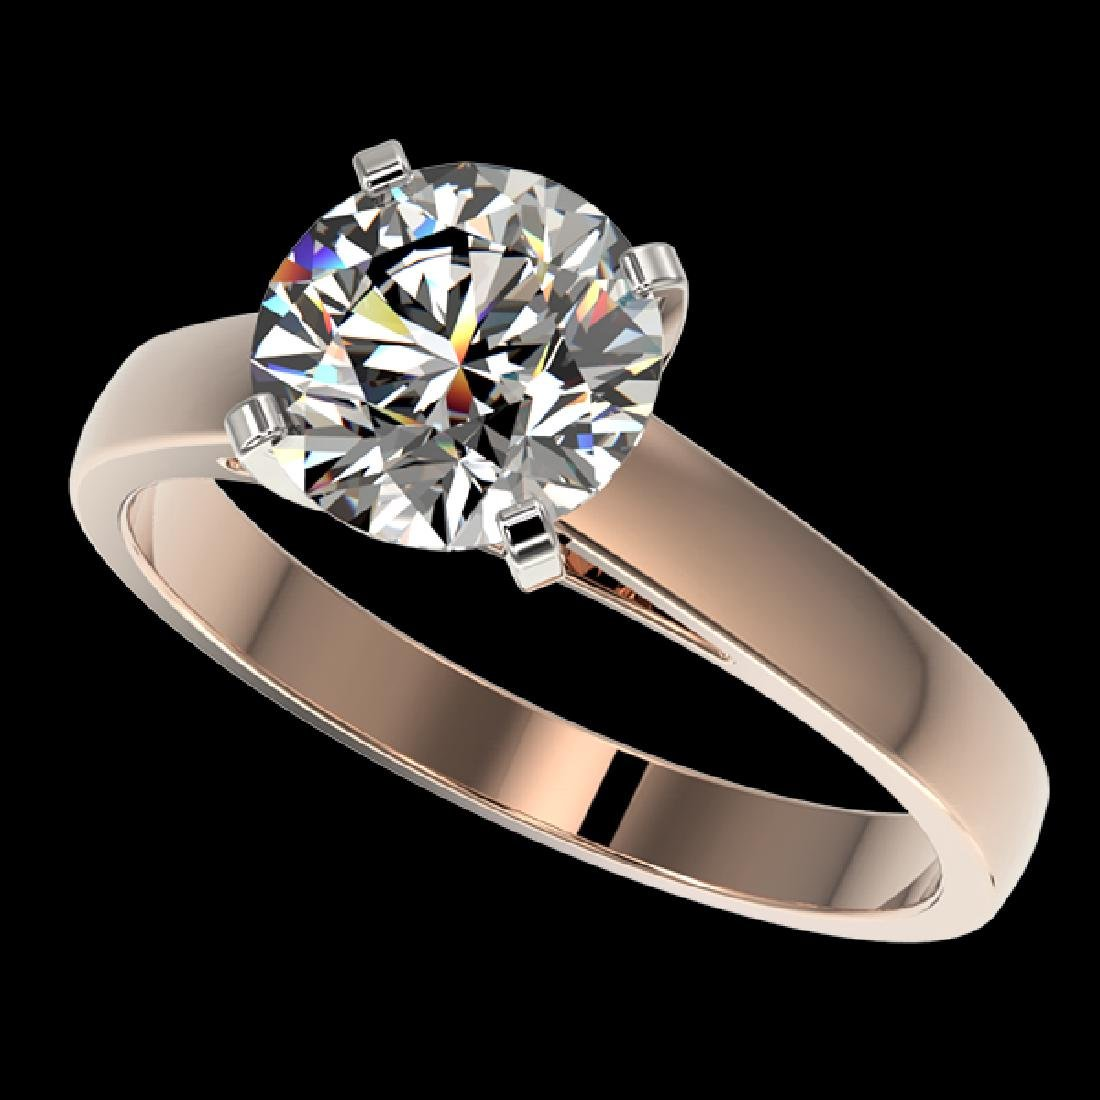 2.05 CTW Certified G-Si Quality Diamond Solitaire